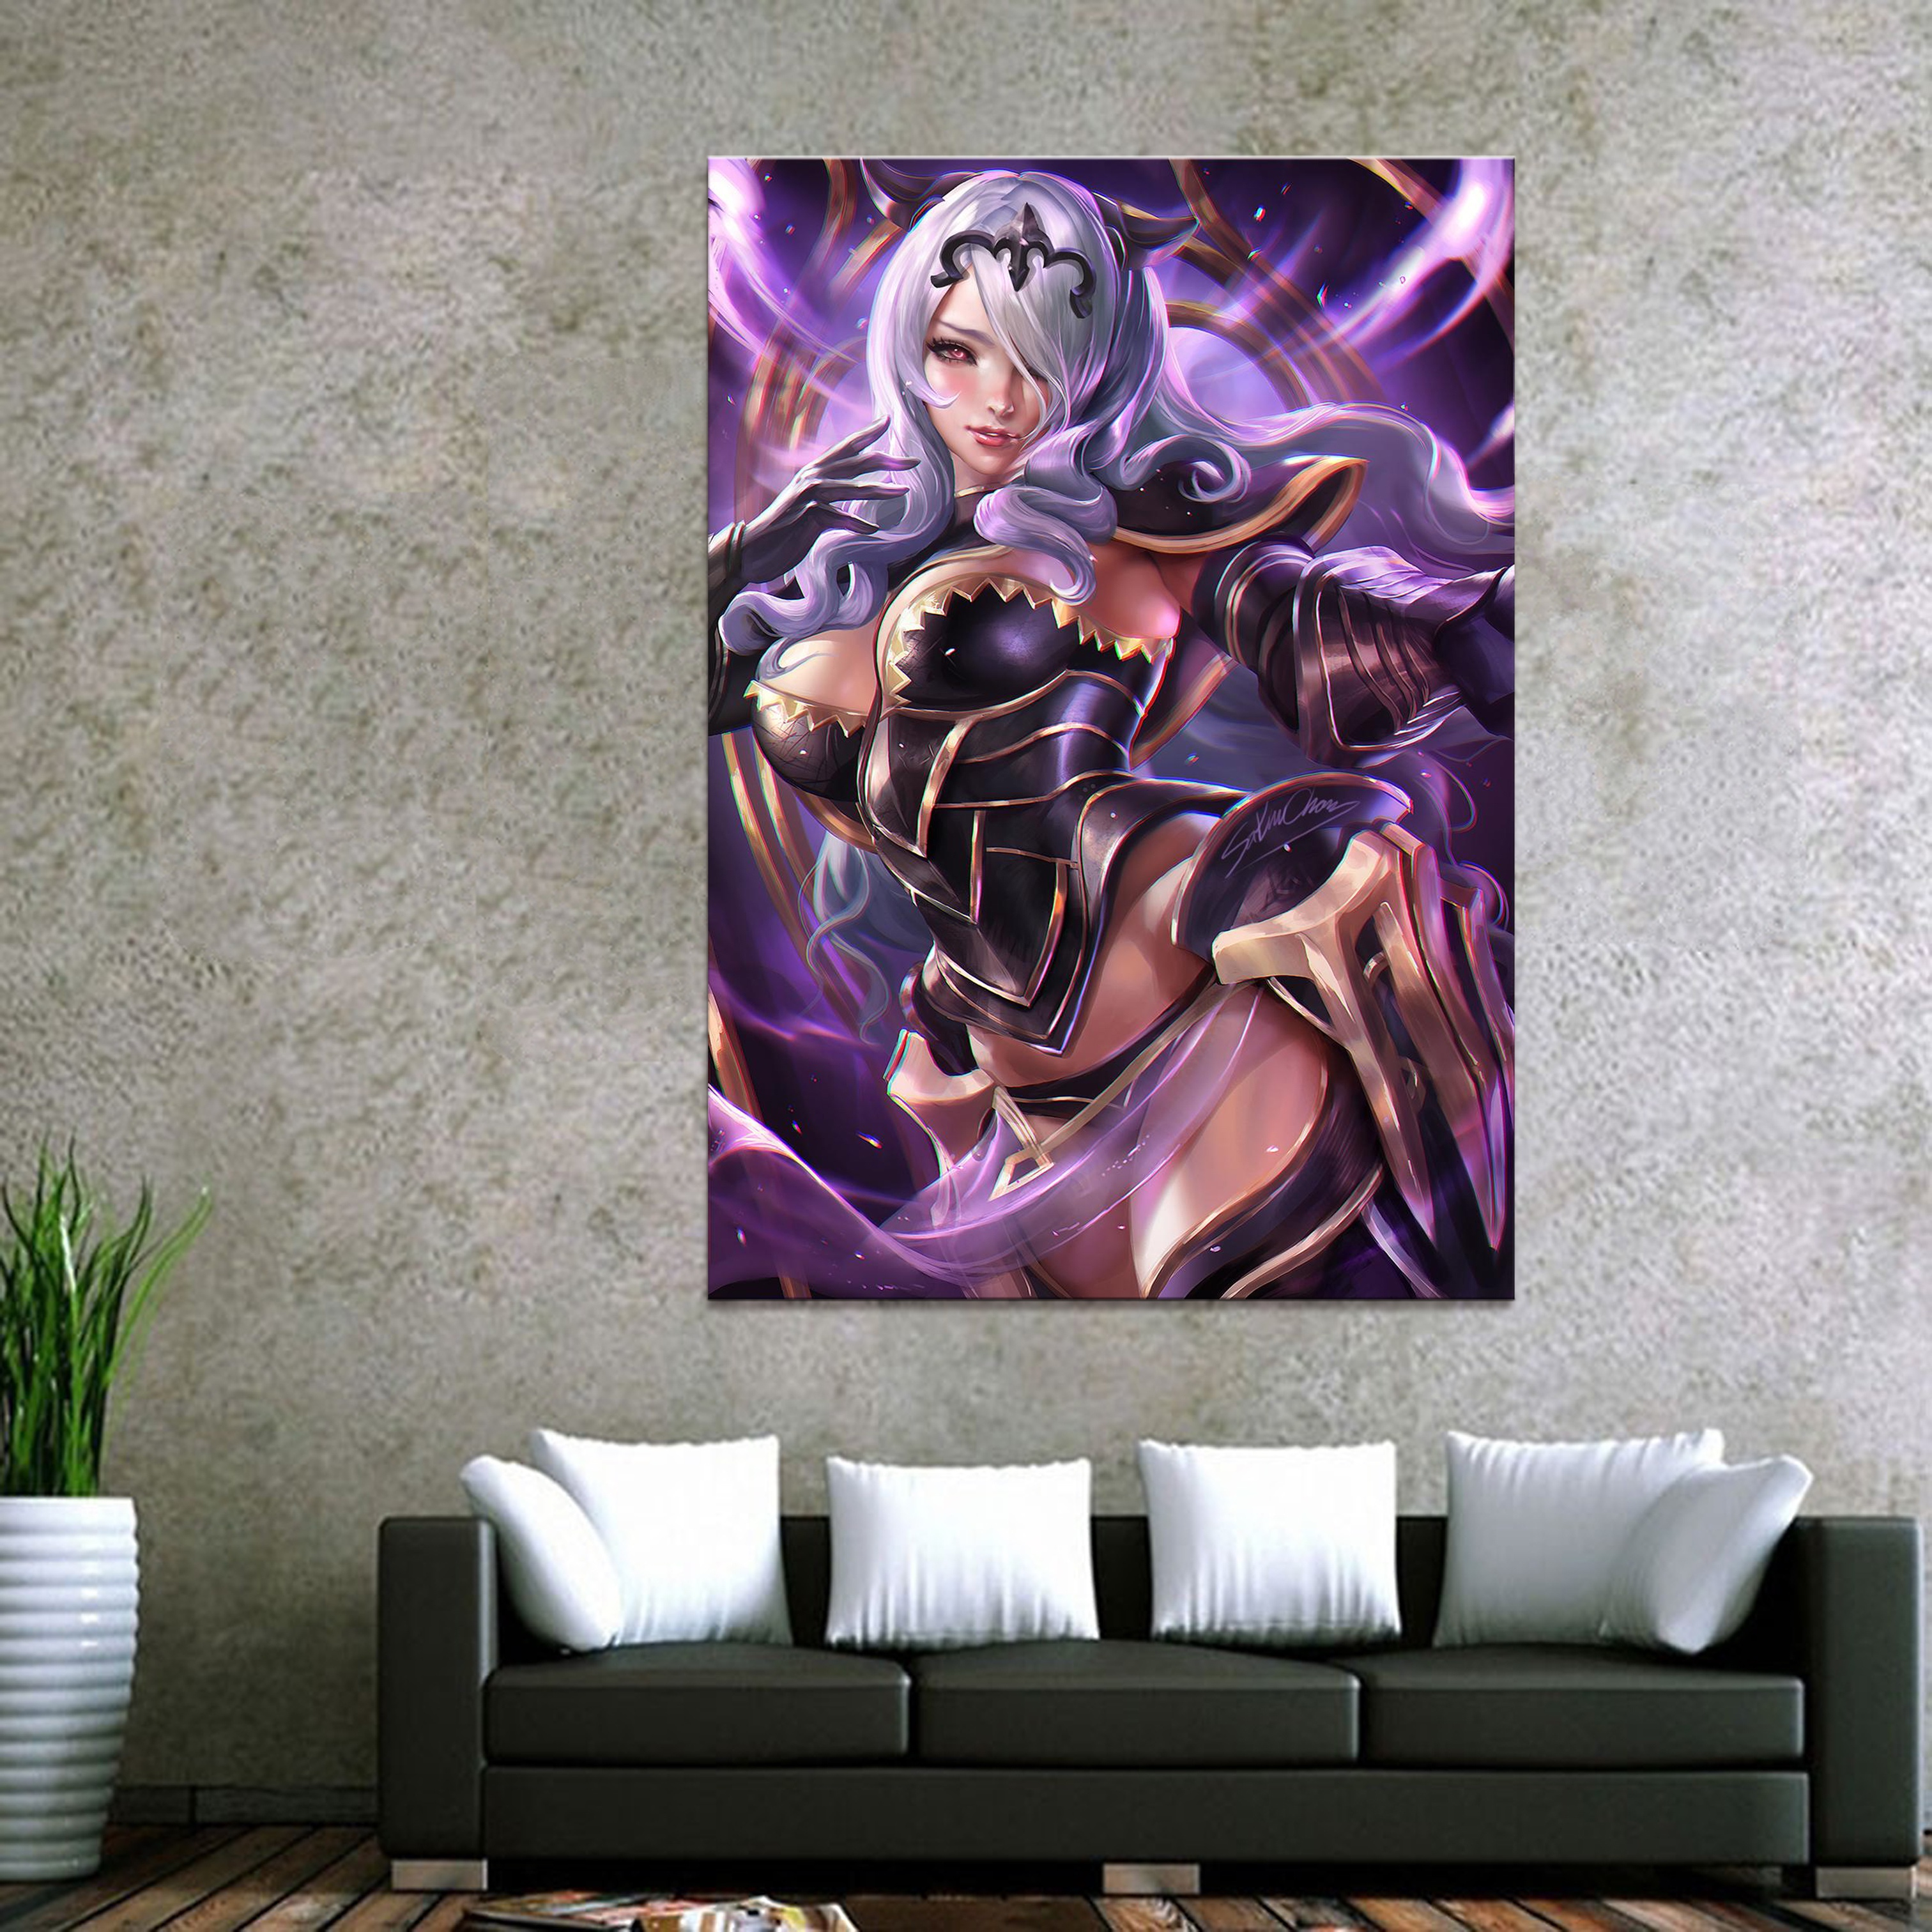 Home Decor Canvas Camilla fire emblem Game 1 Piece Anime Sexy girl Art Poster Prints Picture Wall Decoration Painting wholesale in Painting Calligraphy from Home Garden